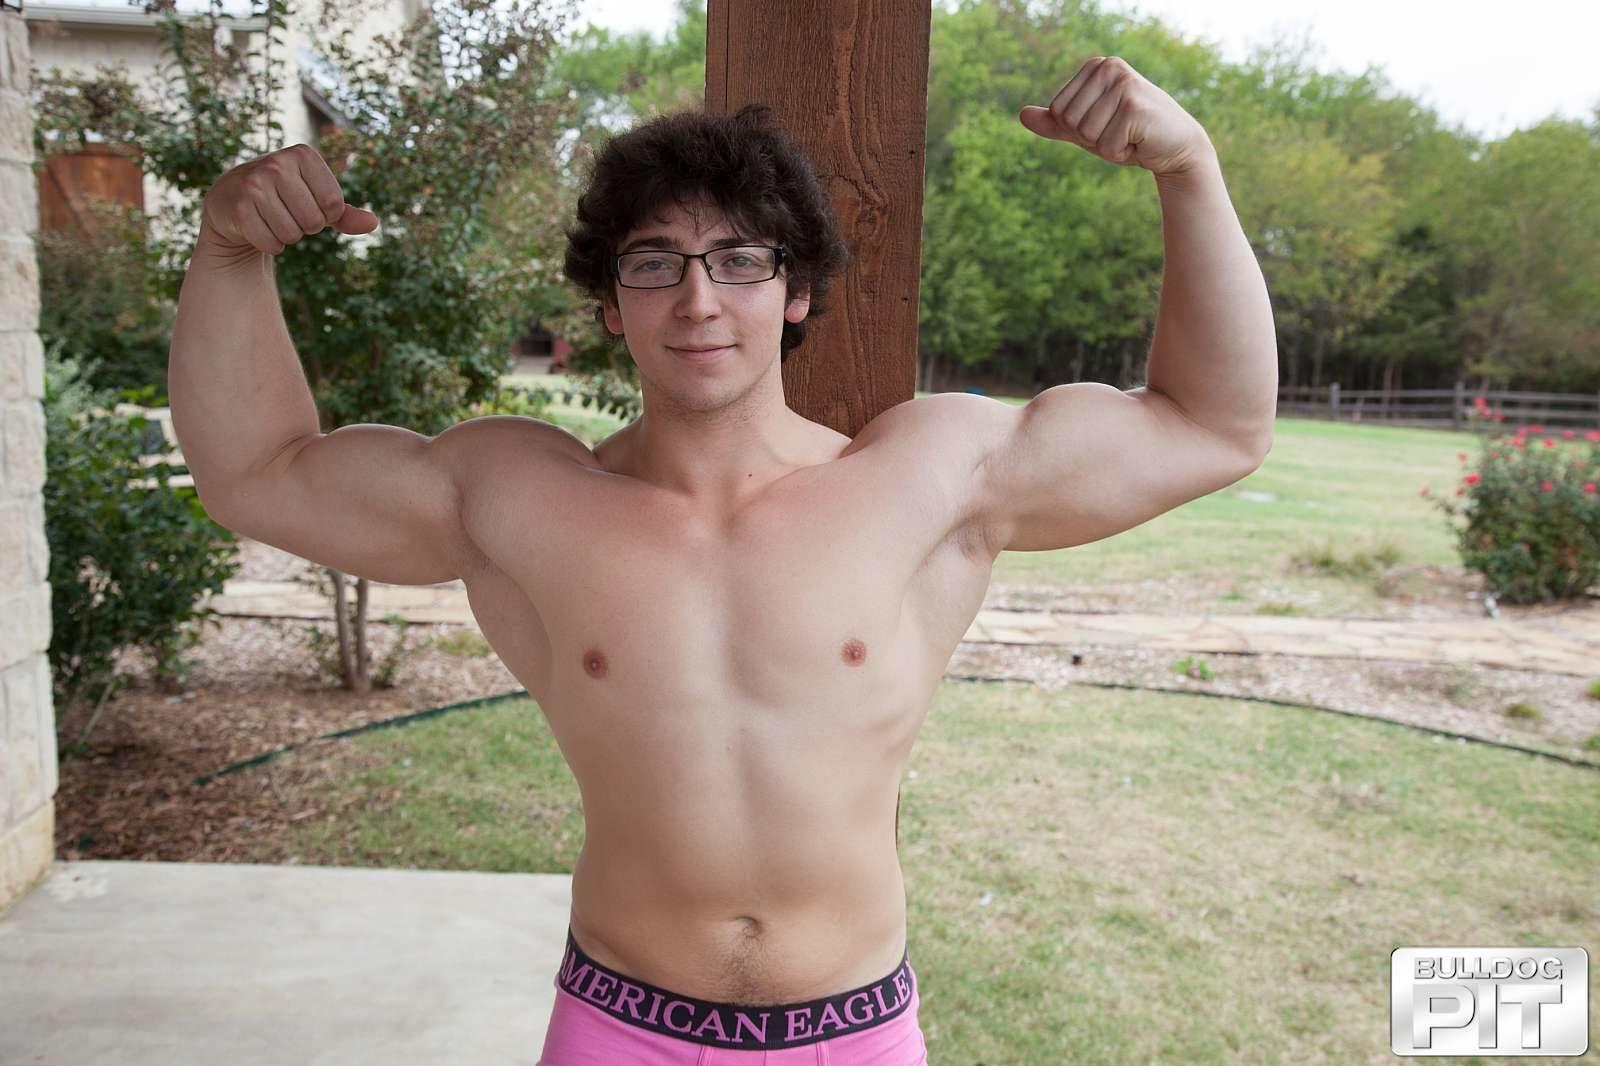 Bulldog-Pit-Clark-Naked-College-Muscle-Guy-Jerk-Off-05 Naked Jewish Muscular College Boy Caught Jerking Off Outside!